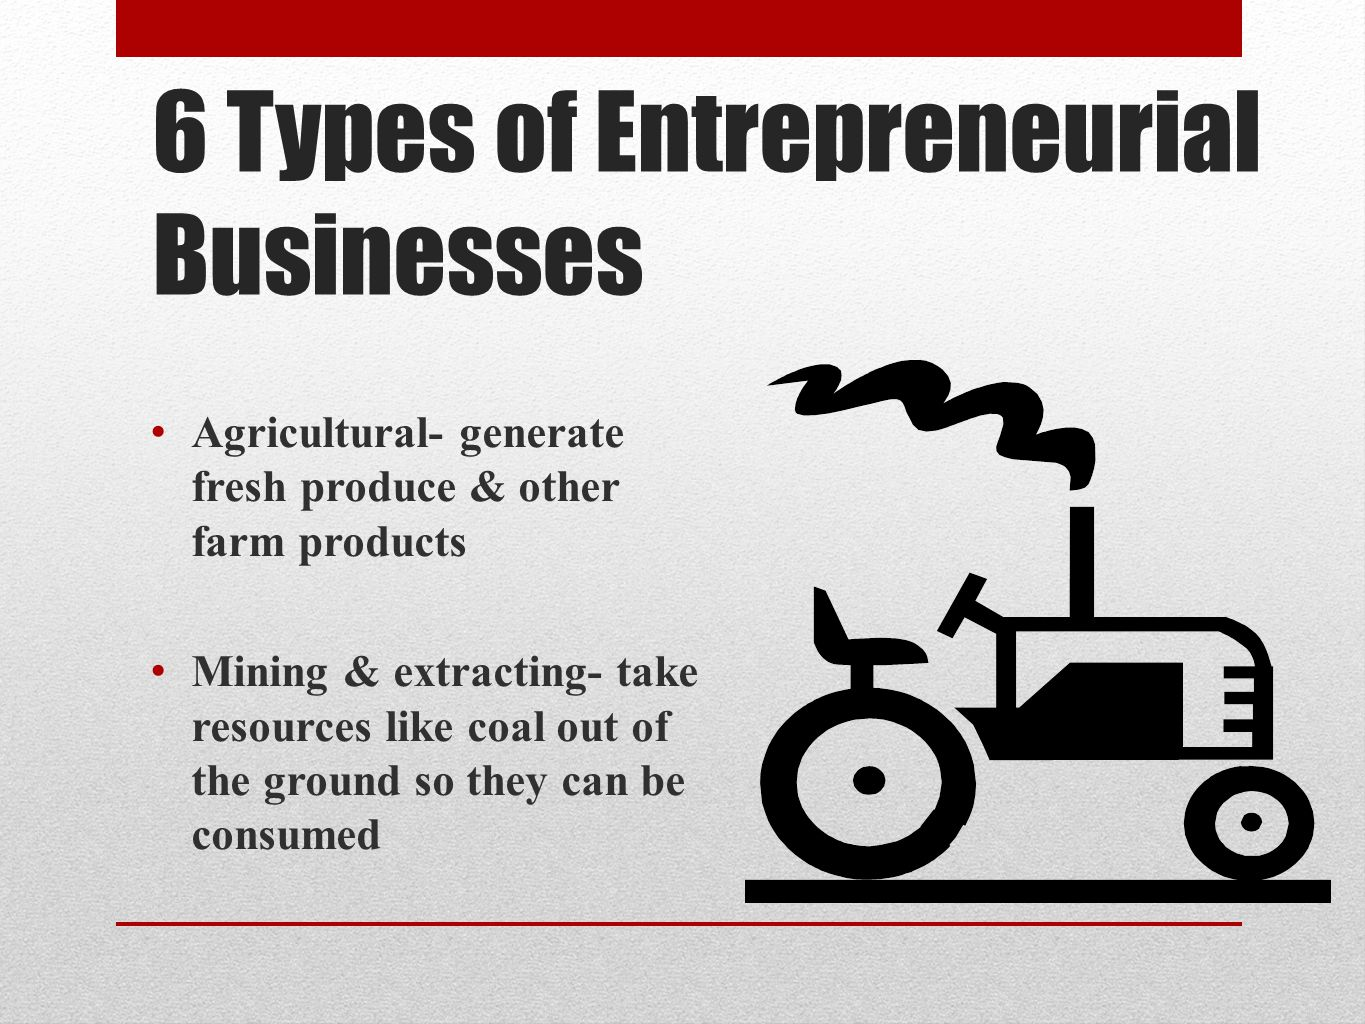 6 Types of Entrepreneurial Businesses Agricultural- generate fresh produce & other farm products Mining & extracting- take resources like coal out of the ground so they can be consumed